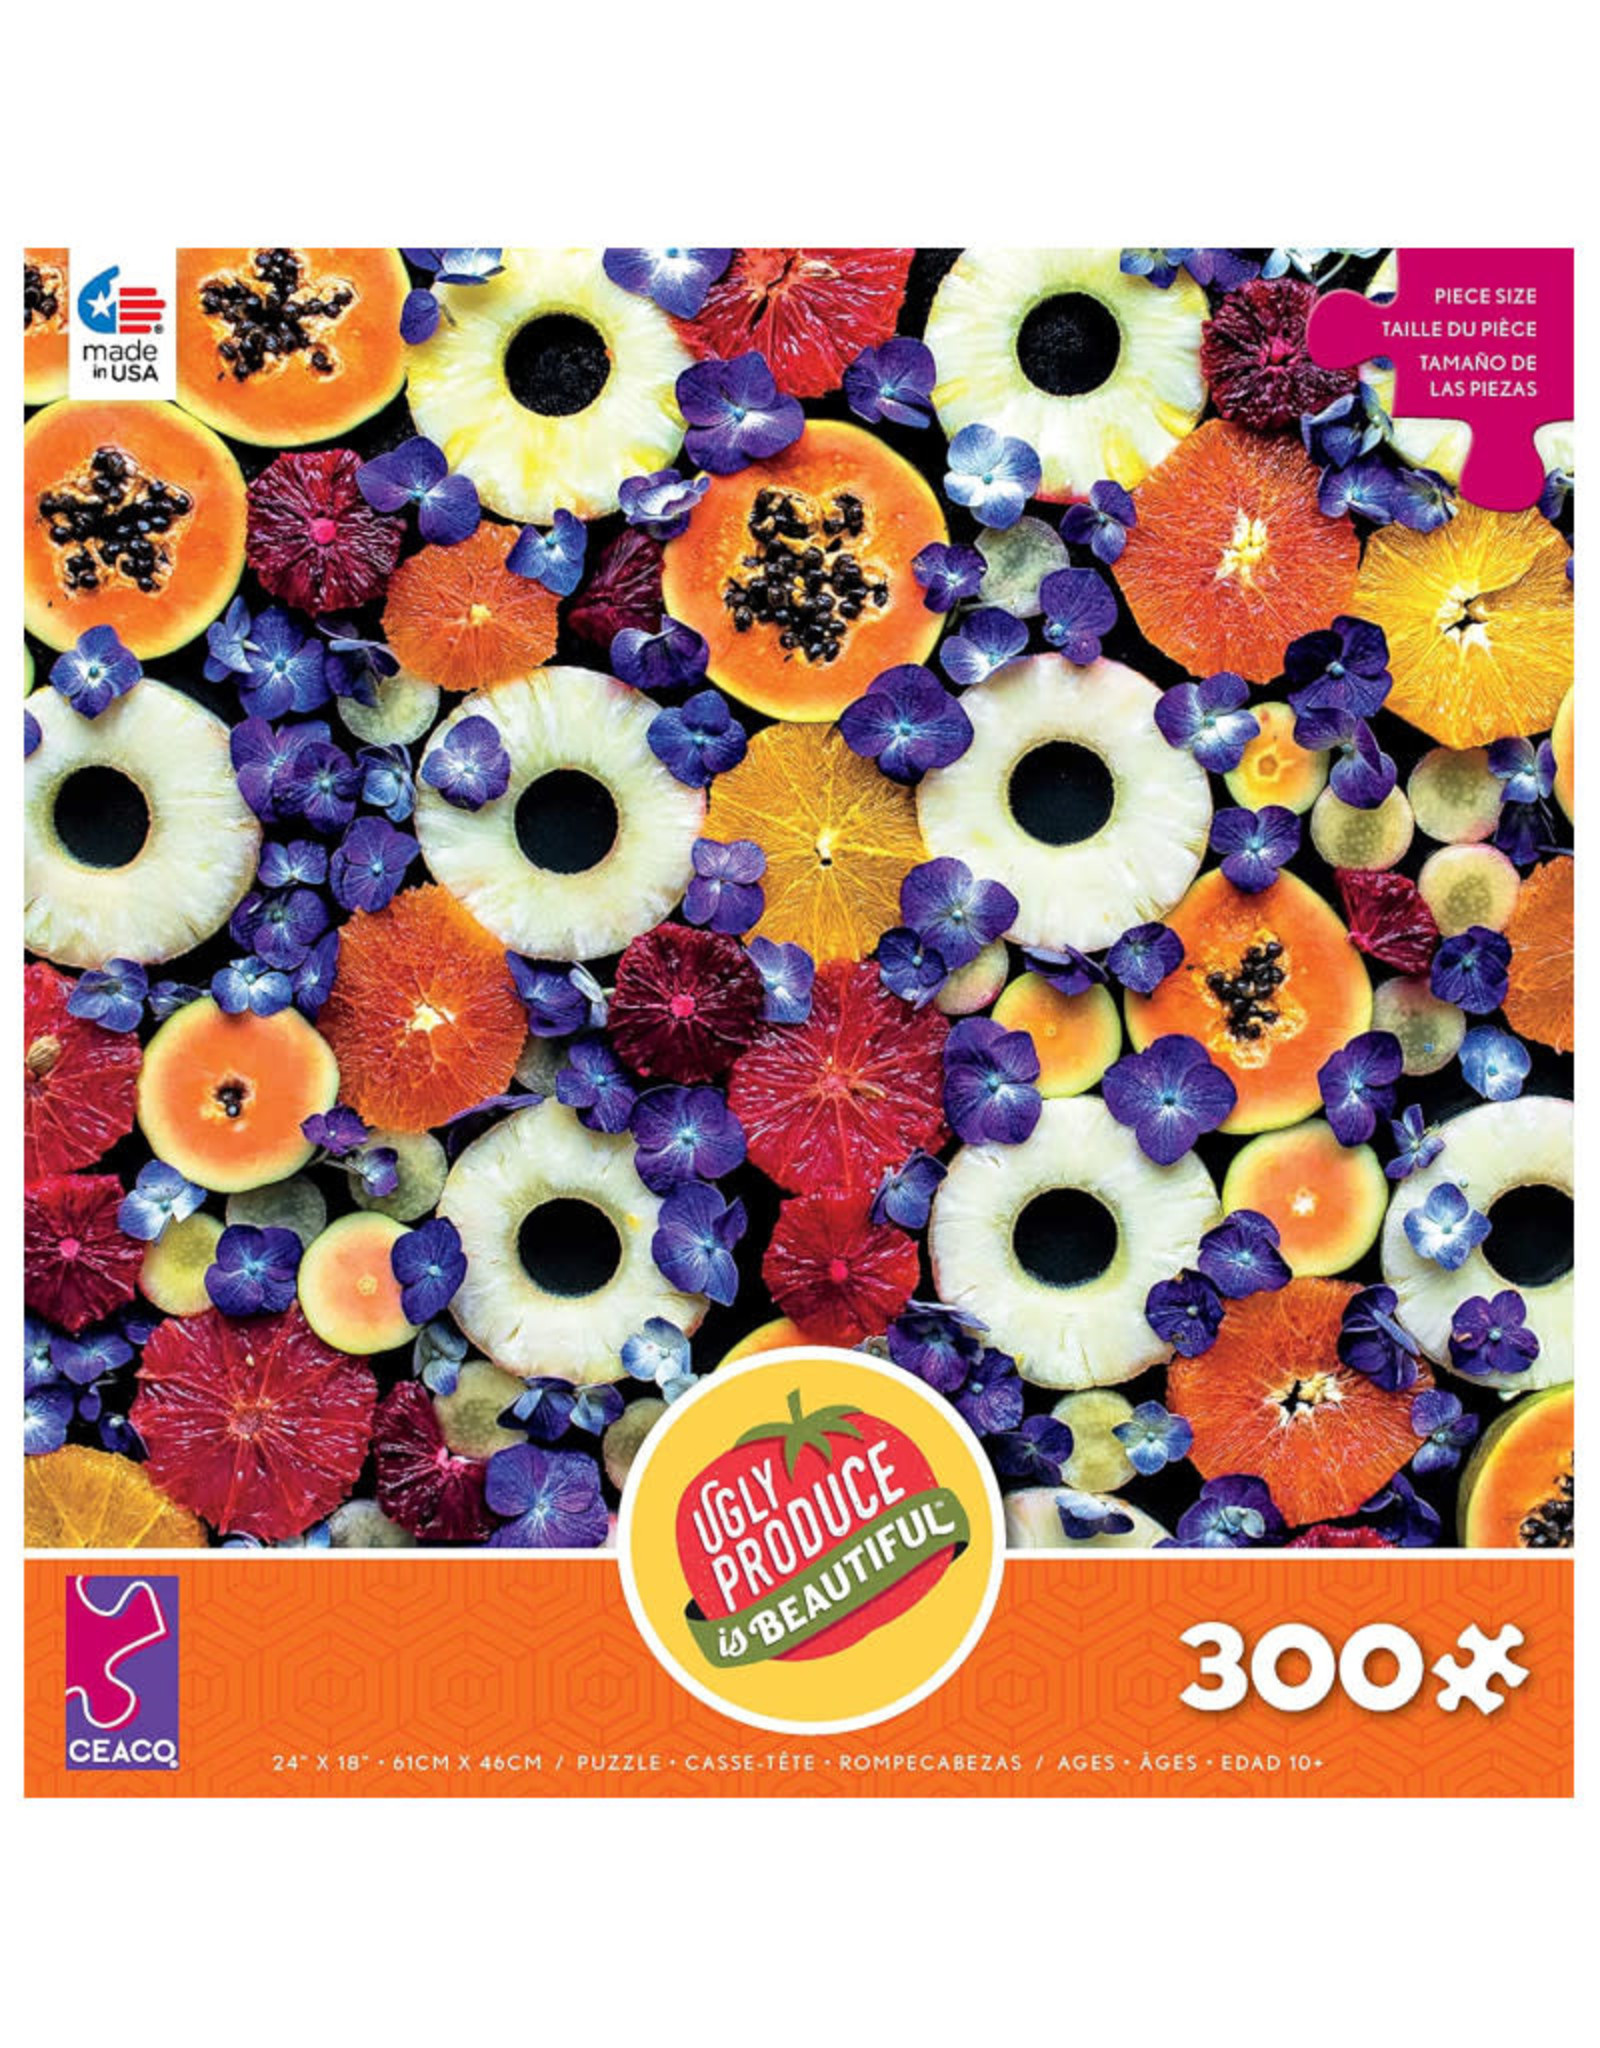 Ceaco Ugly Produce is Beautiful Almost Spring Color Mix  Puzzle 300 PCS